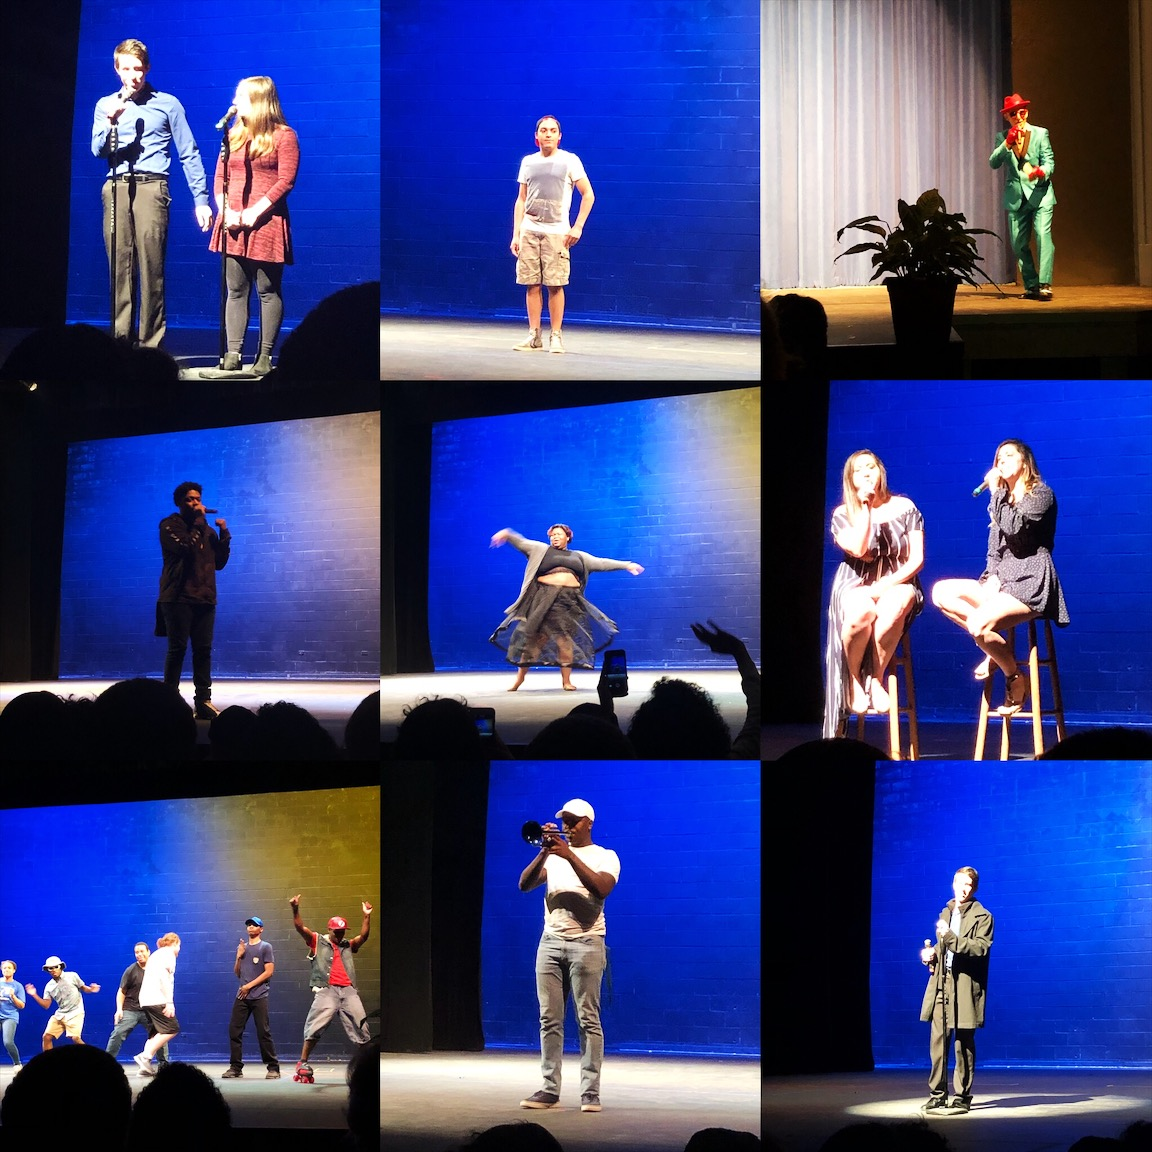 Students, faculty and staff all participated in the talent show held on March 14.